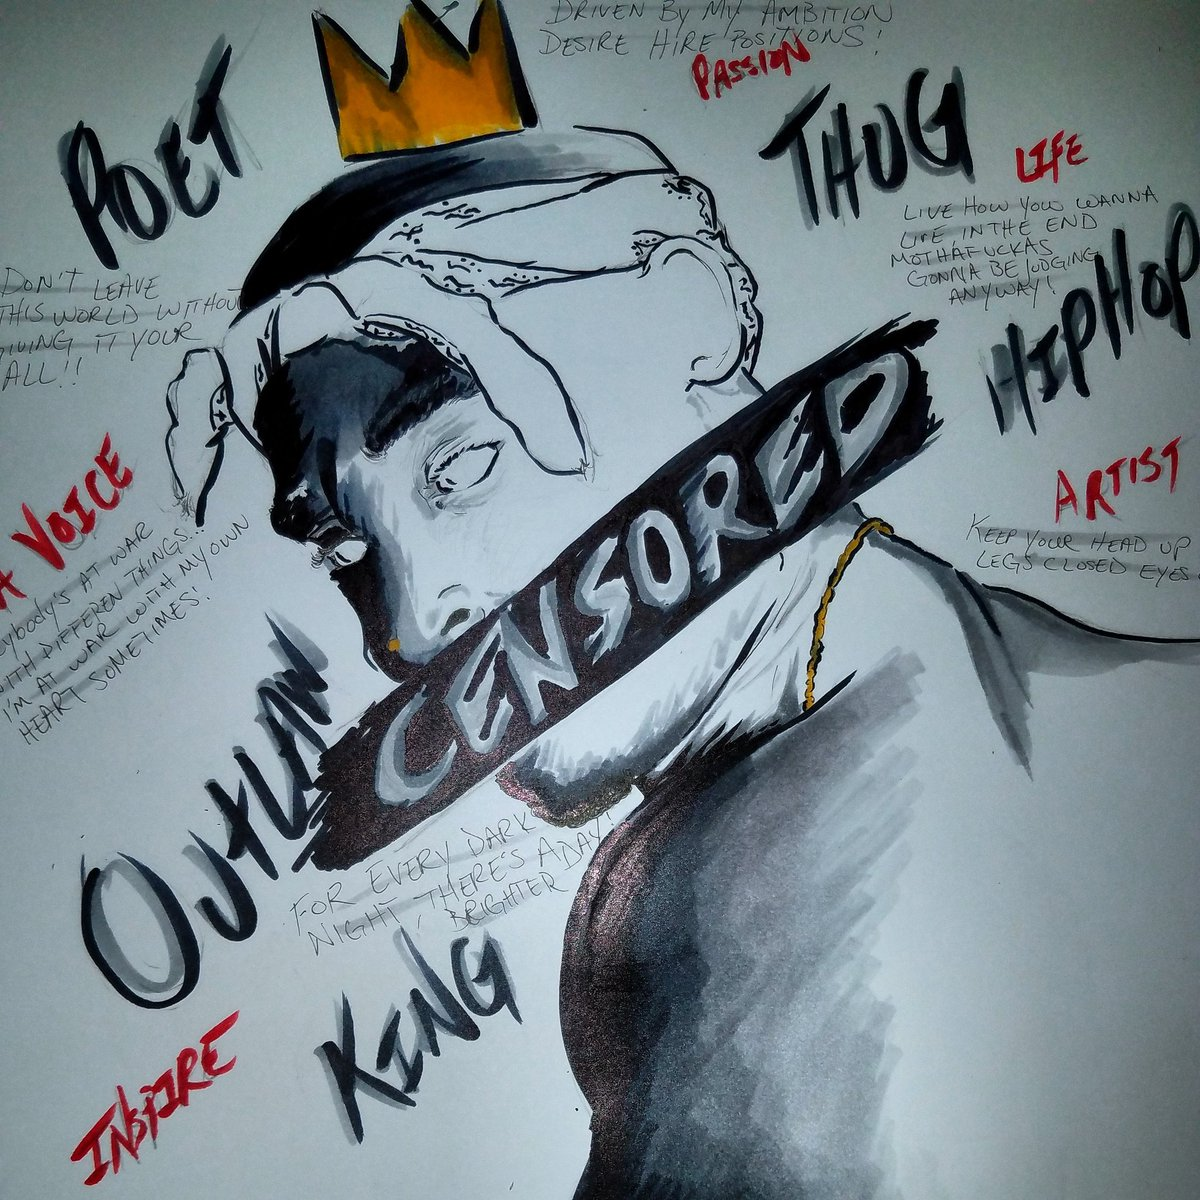 Use Your IMAGINATION || UNTITLED #CENSORED #MotivationMonday #TupacShakur #StriveForGreatness #jleeart #artisttwitter #MusicMonday<br>http://pic.twitter.com/Fh8IZGetmi